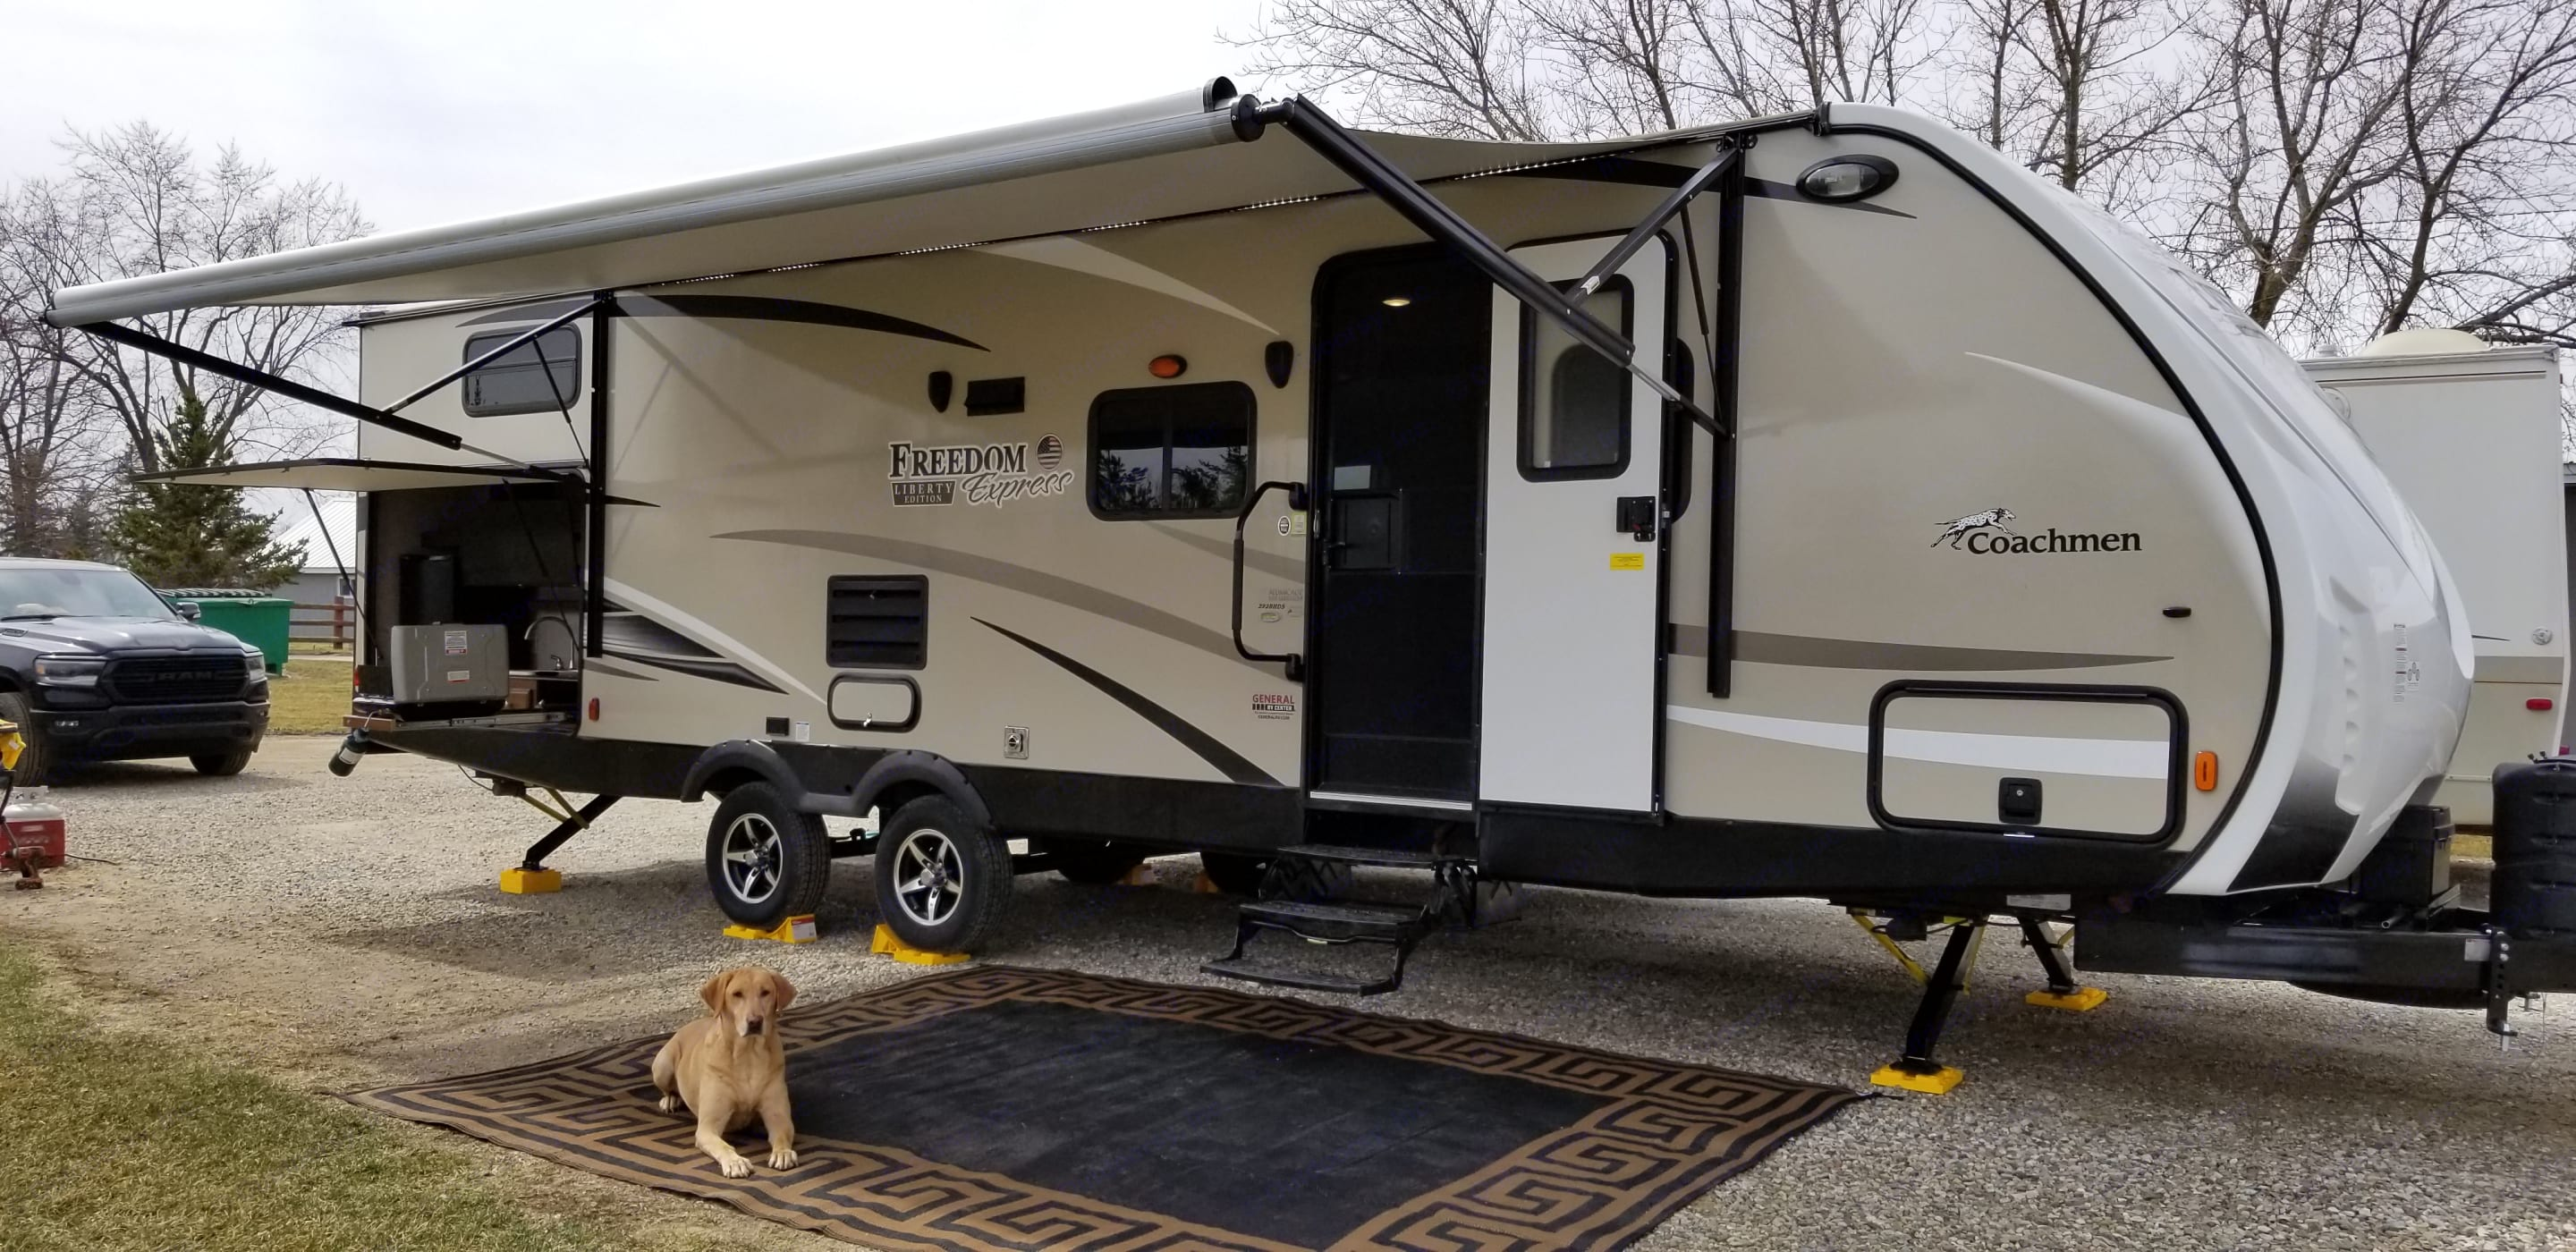 Camping in style! . Coachmen Freedom Express 2017